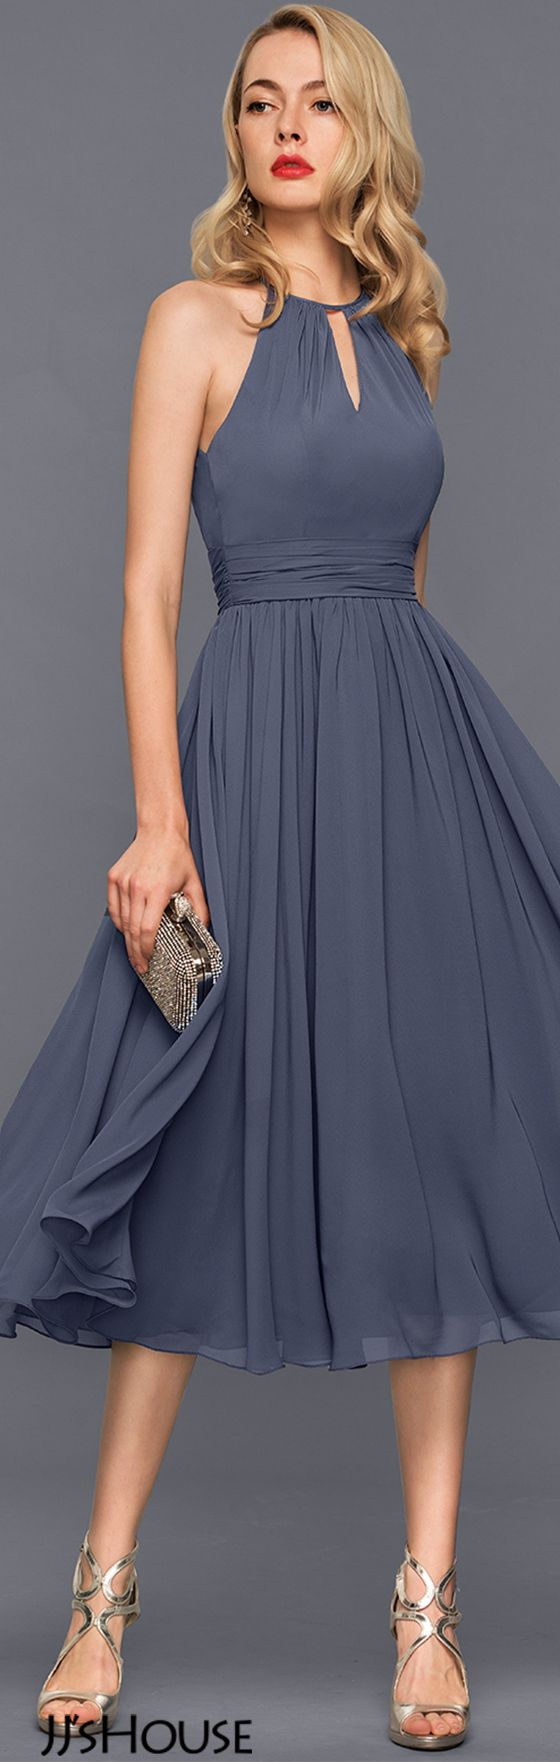 A-Line/Princess Scoop Neck Knee-Length Chiffon Cocktail Dress With Ruffle#JJsHouse #Cocktail dresses